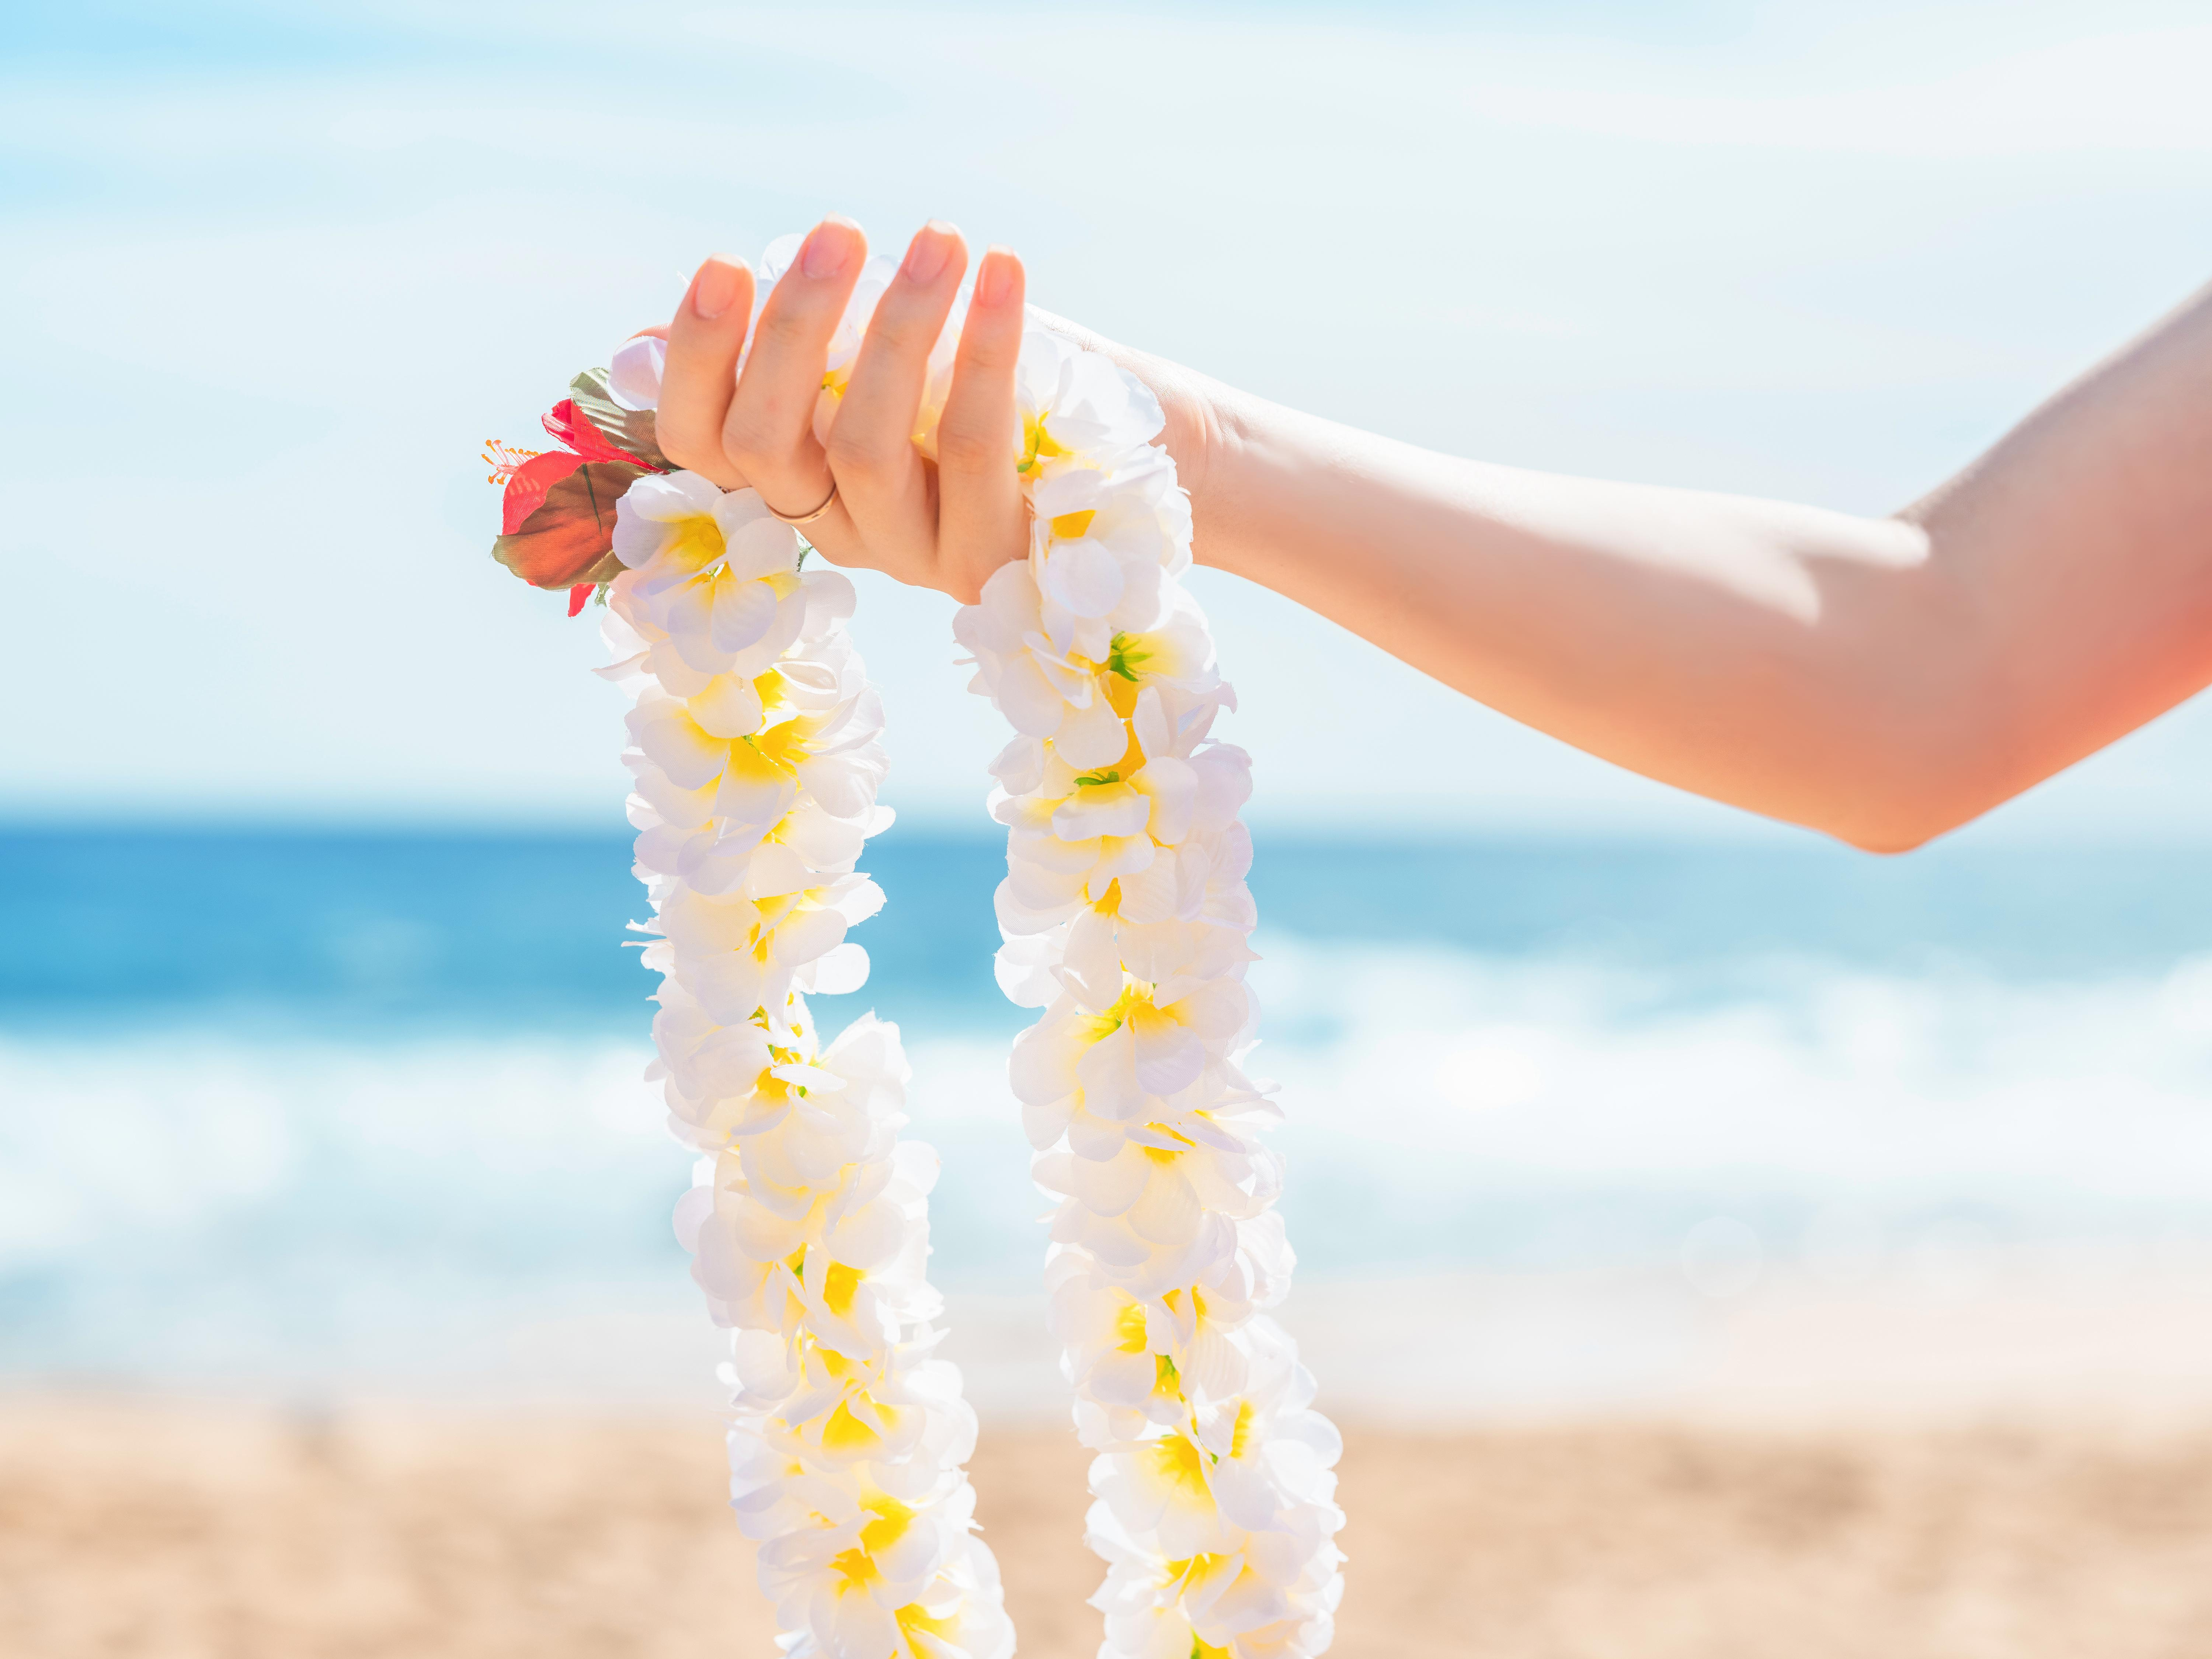 Giving a Lei